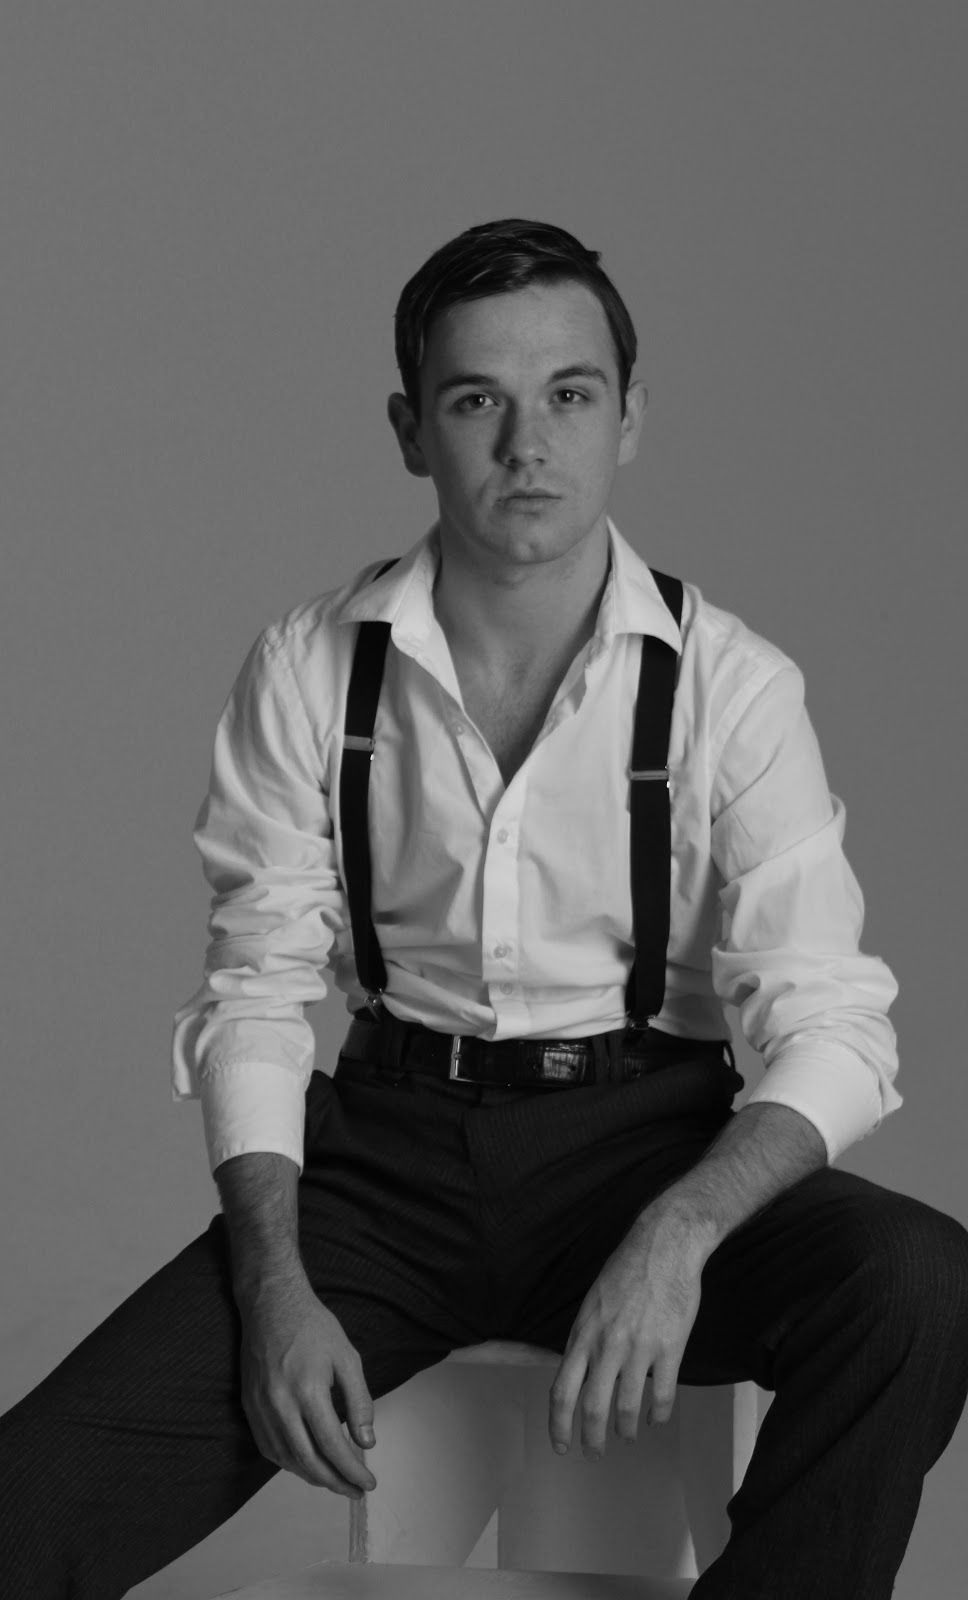 Pin By Tj Bevan On Scy Fy Traveling Companion 2 In 2019 Pinterest Marlin Model 60 Parts Diagram Image Search Results 1950 Men Working Class Clothing 1950s Guys Fashion Google Costume